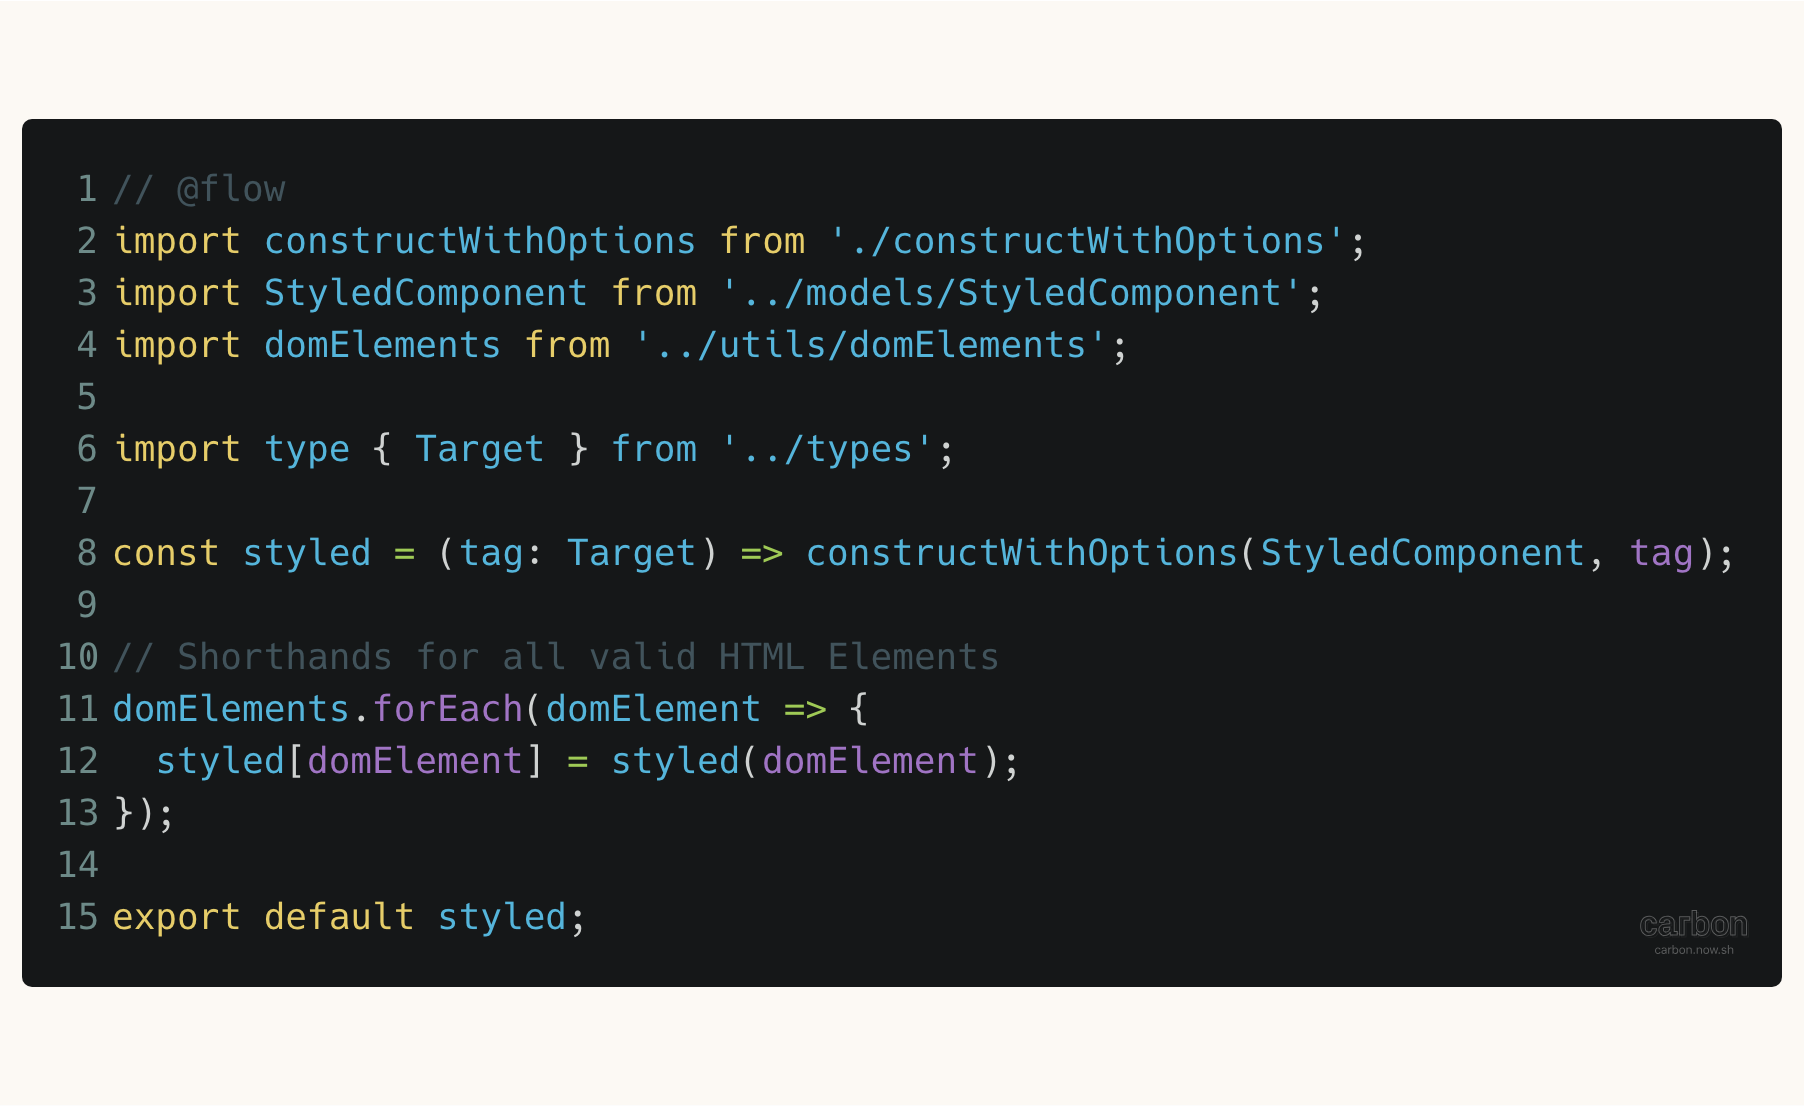 Styled-Components styled.js file